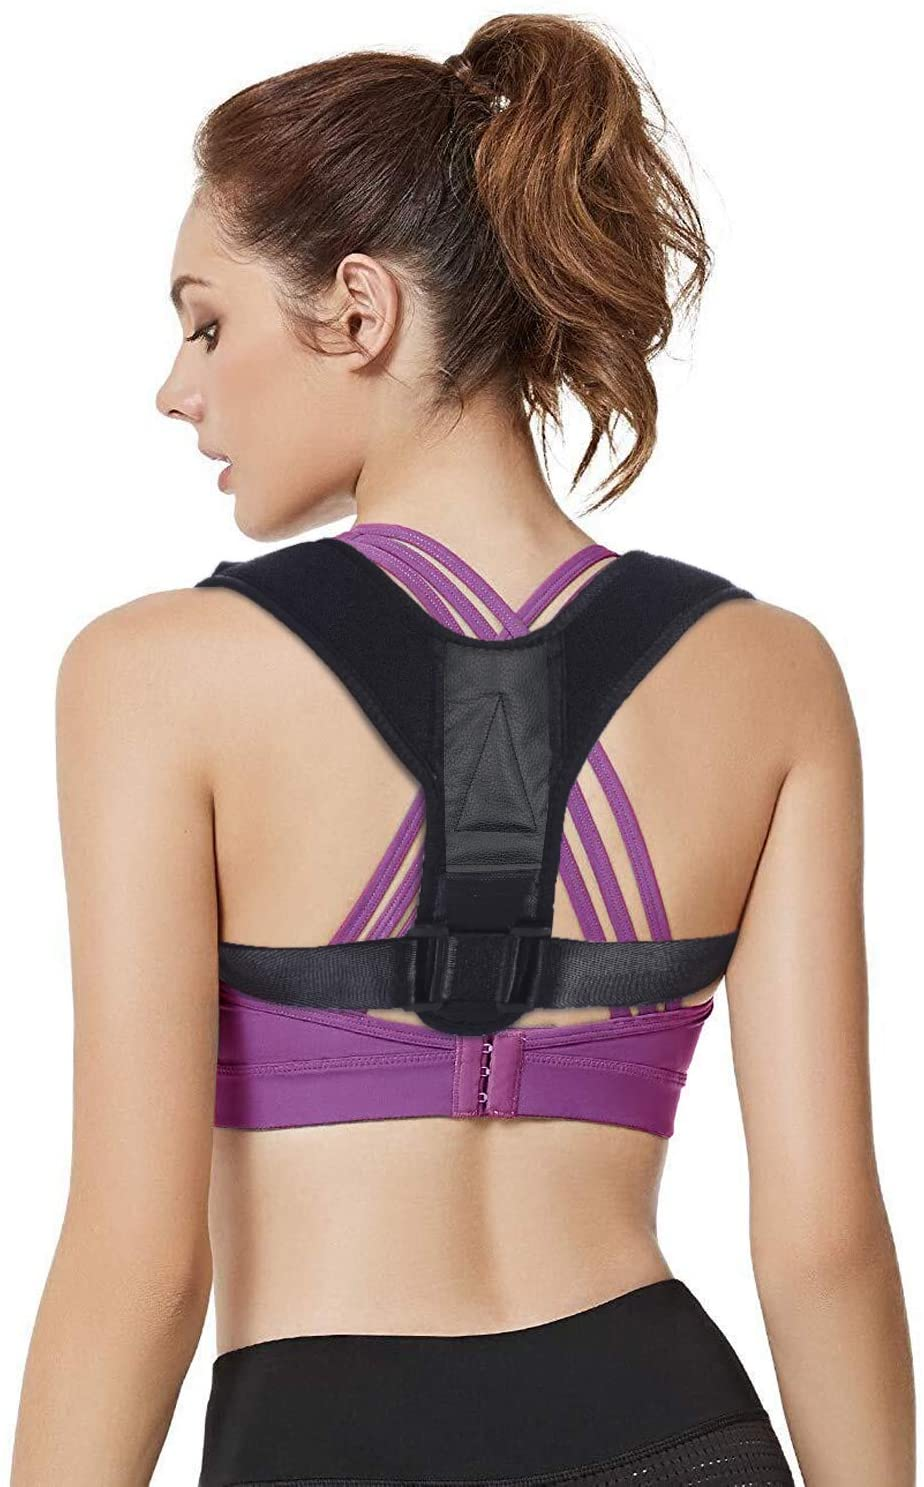 【2019 New】Posture Corrector for Women and Men (Basic, M(Chest Size:30-35